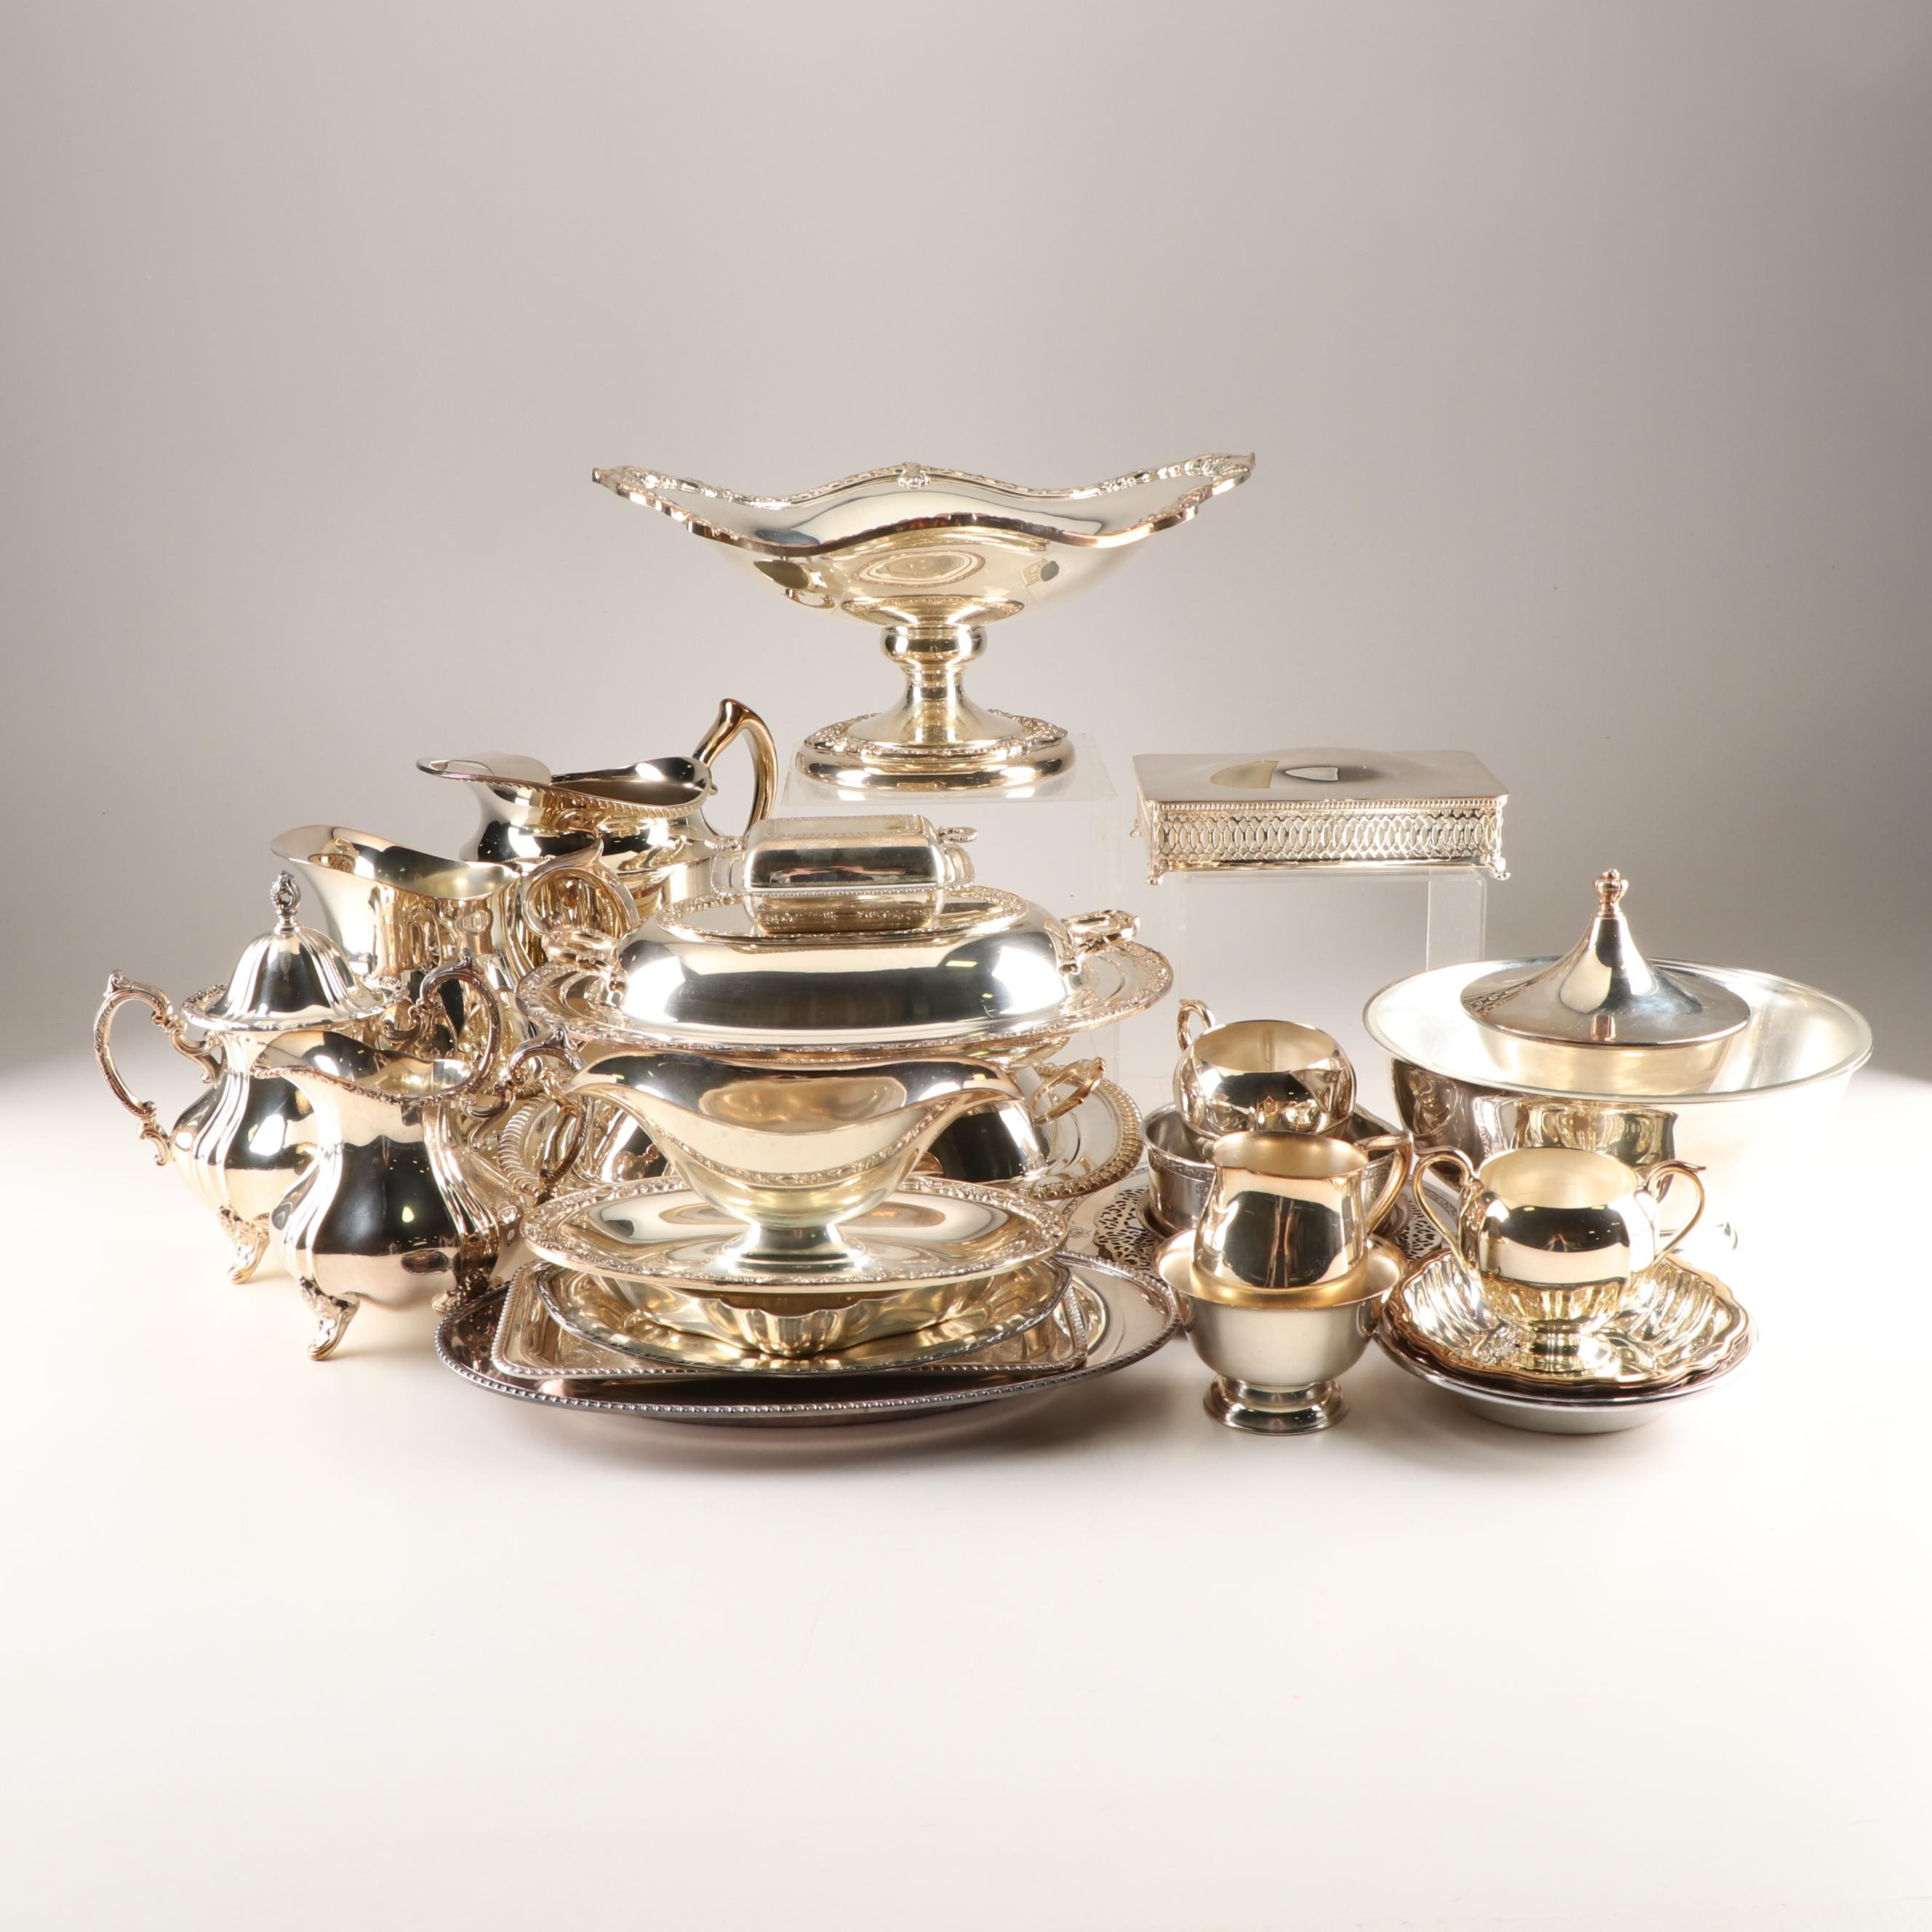 Plated Silver Tableware and Serving Pieces including Sheridan Centerpiece Bowl